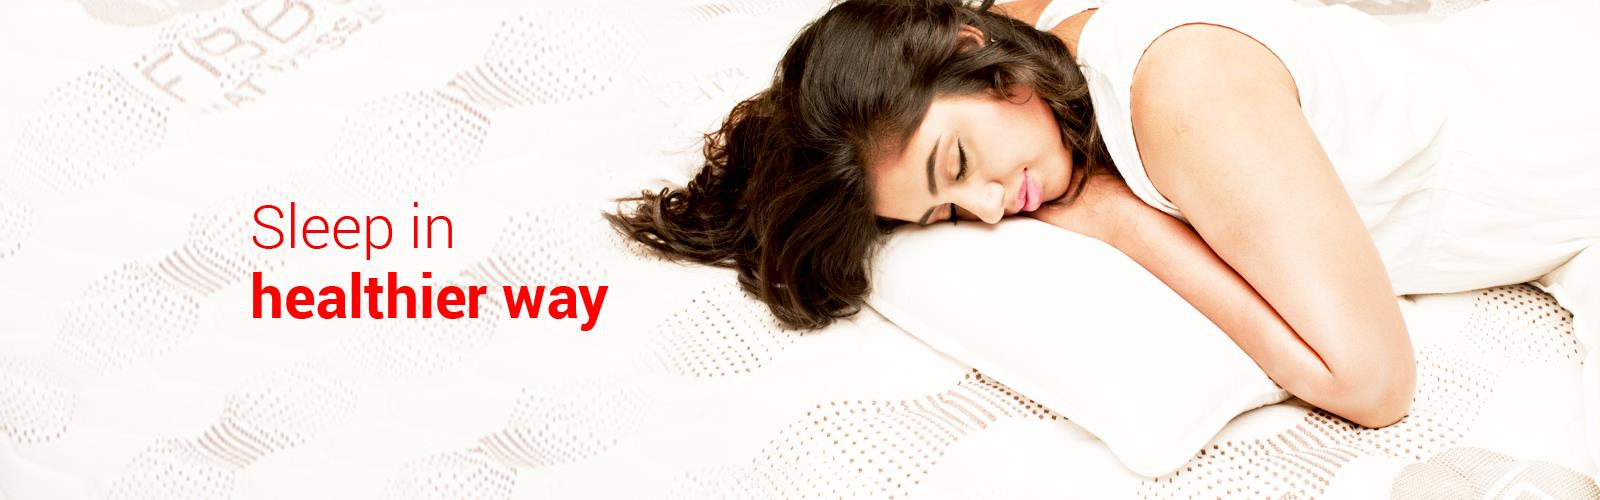 Sleep in Healthier Way.  Fibbo Mattresses are Manufactured by M/s.Slivertex Engineers Private Limited, Coimbatore.  We are a Prominent Firm Engaged in Manufacturer, Exporter and Supplier of Quilt Mattress, Mattress Protector, Orthopedic Mattress in Tamil Nadu. Our clients can avail these products at competitive prices as per their needs.